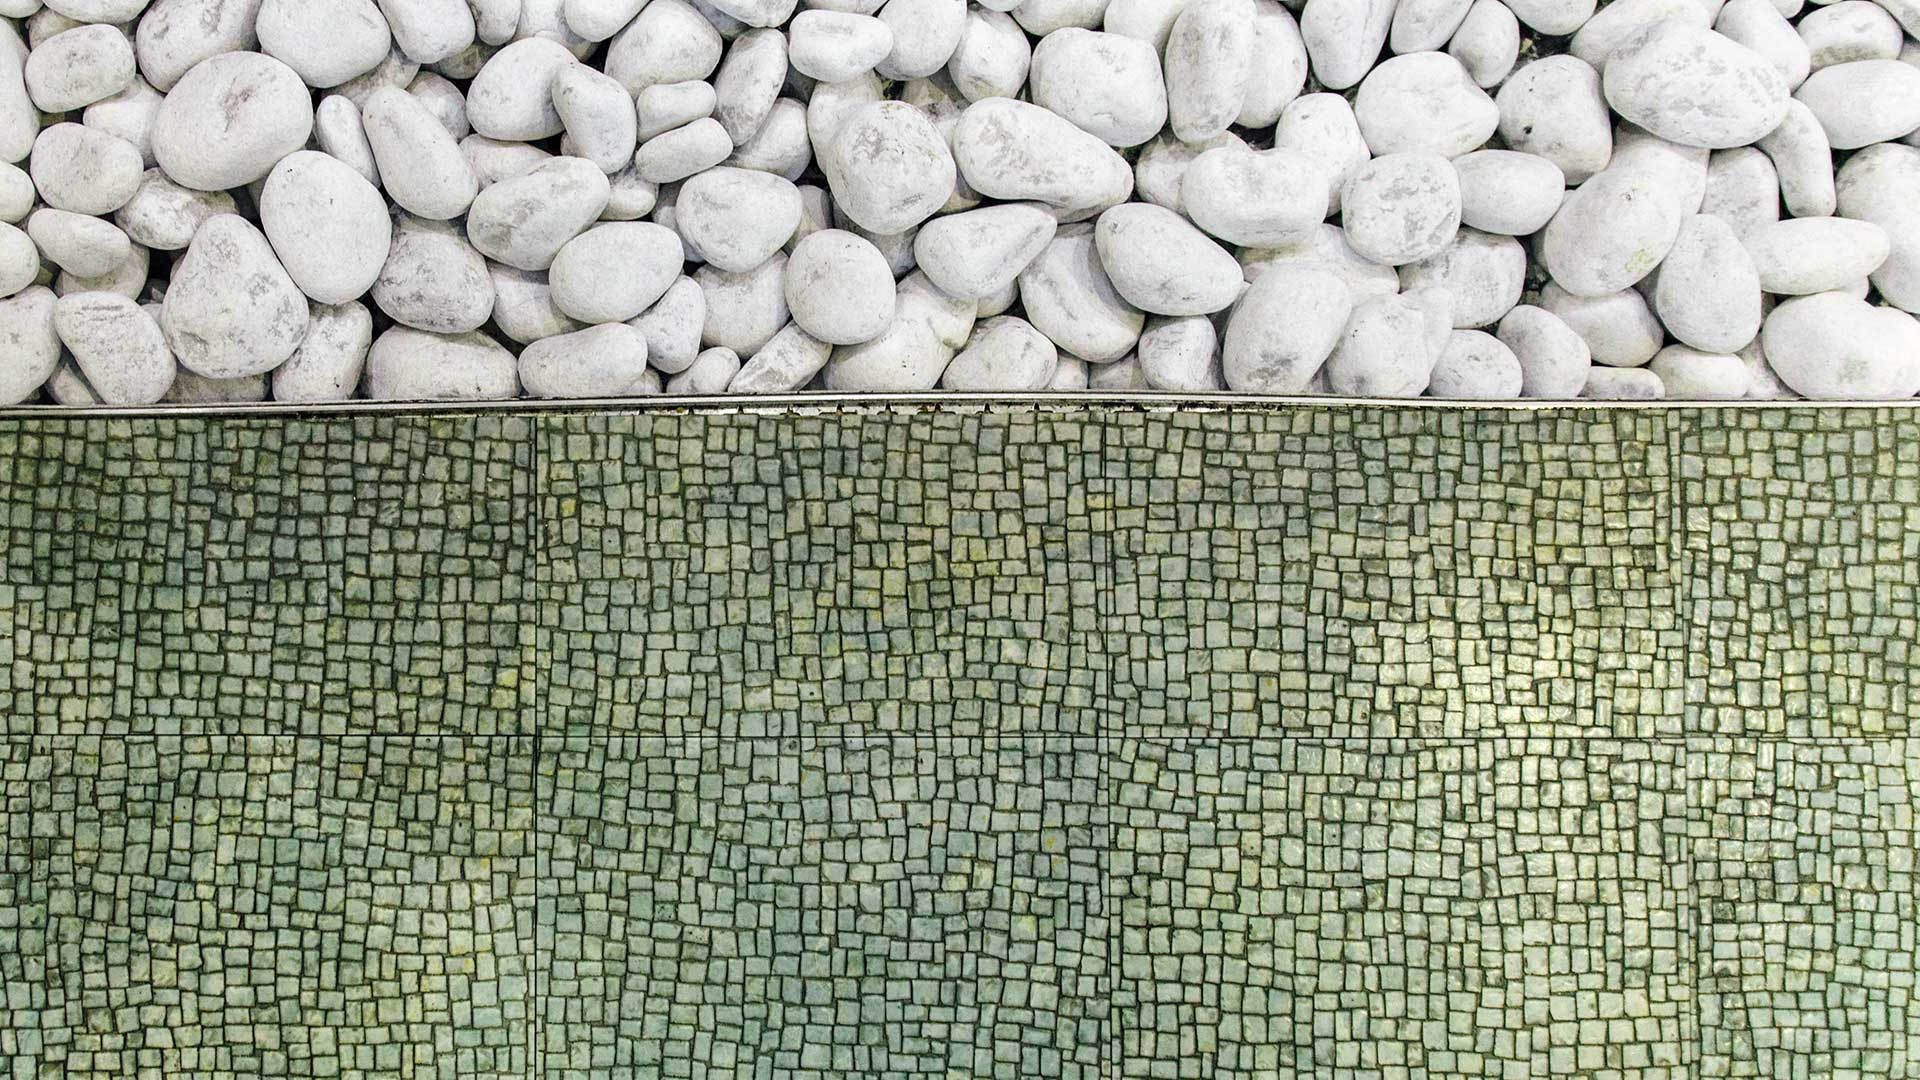 Textural image showing two different textures: round gray rocks and a mosaic wall